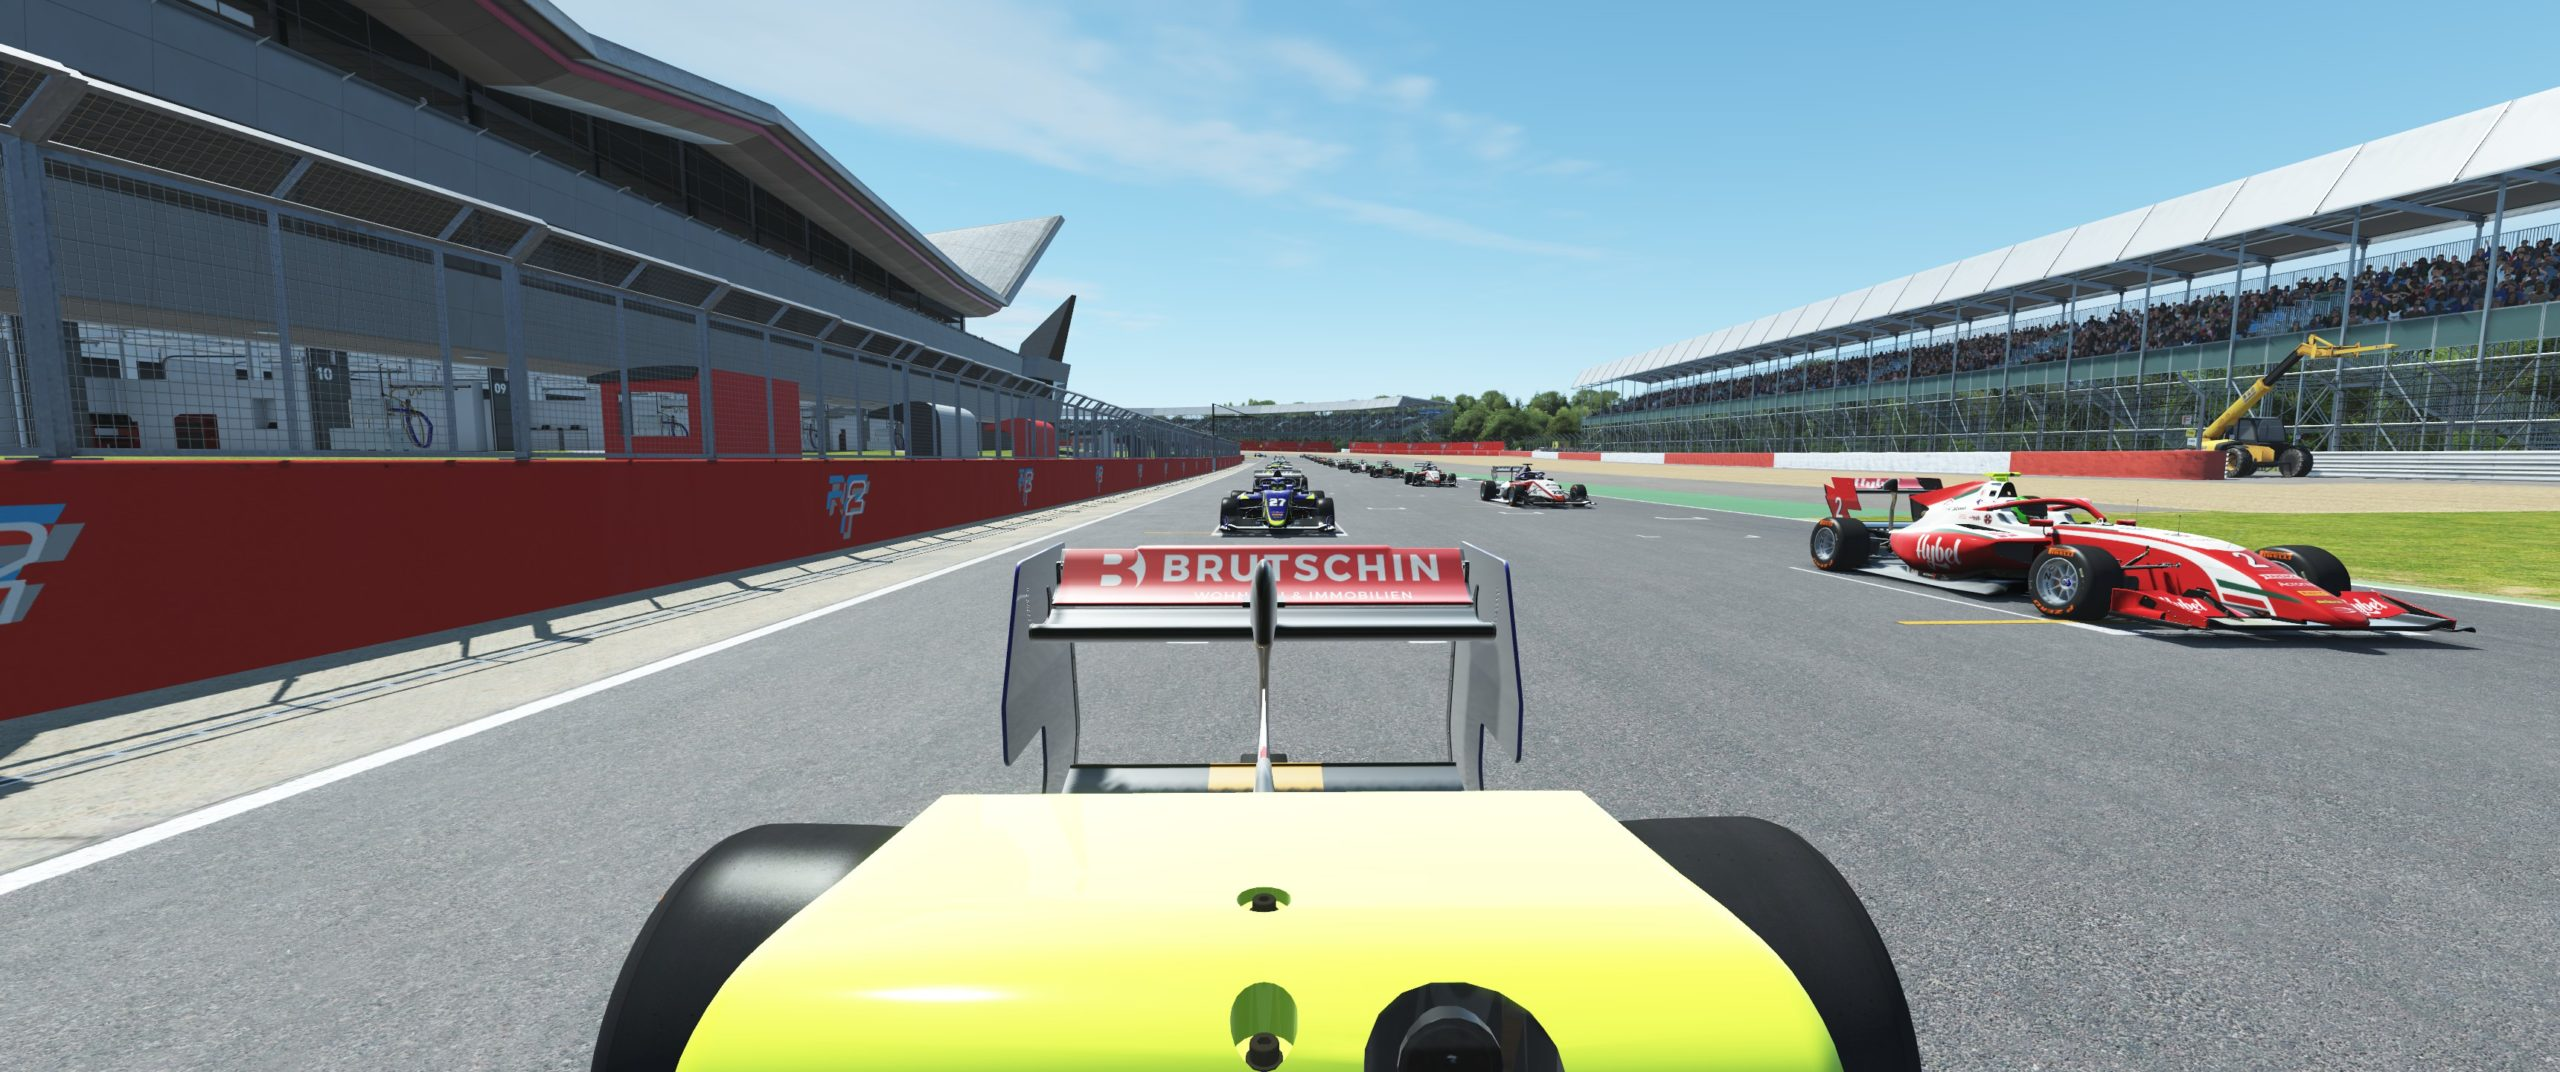 20200629155451_1-scaled SMMG Formula 3 2020 1.0 for rFactor 2 – Released